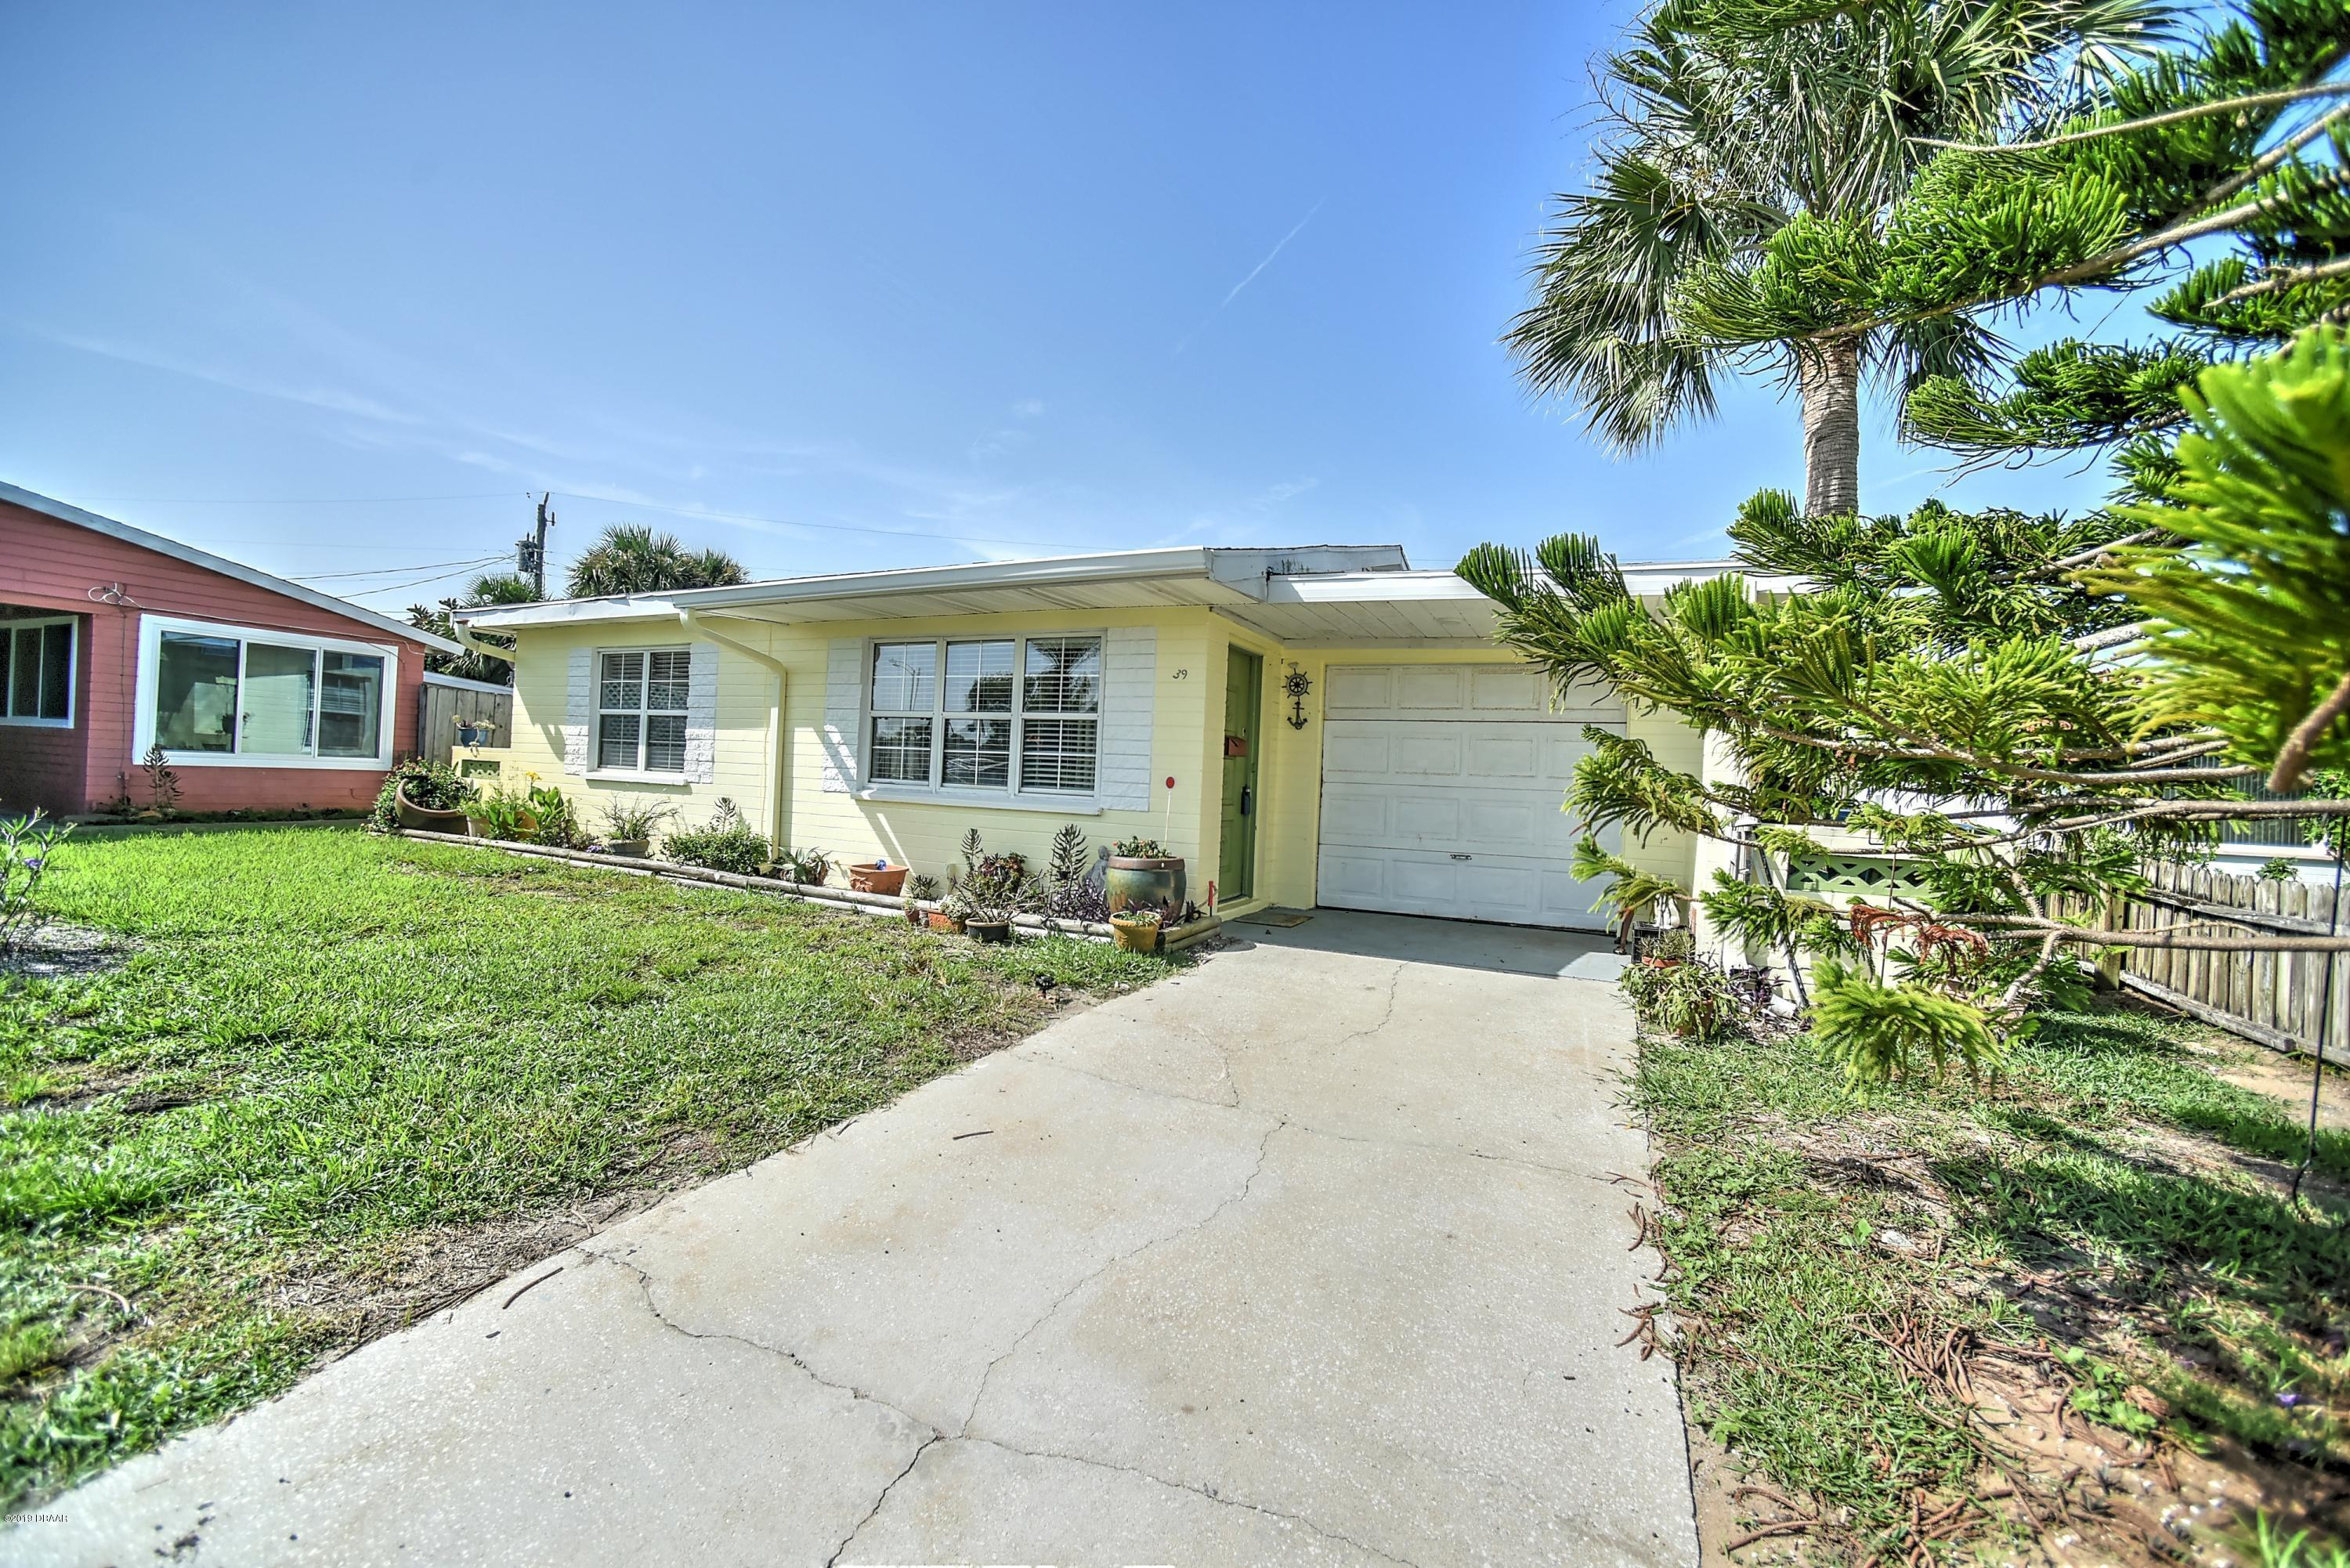 39 Tropical Drive, Ormond-By-The-Sea in Volusia County, FL 32176 Home for Sale